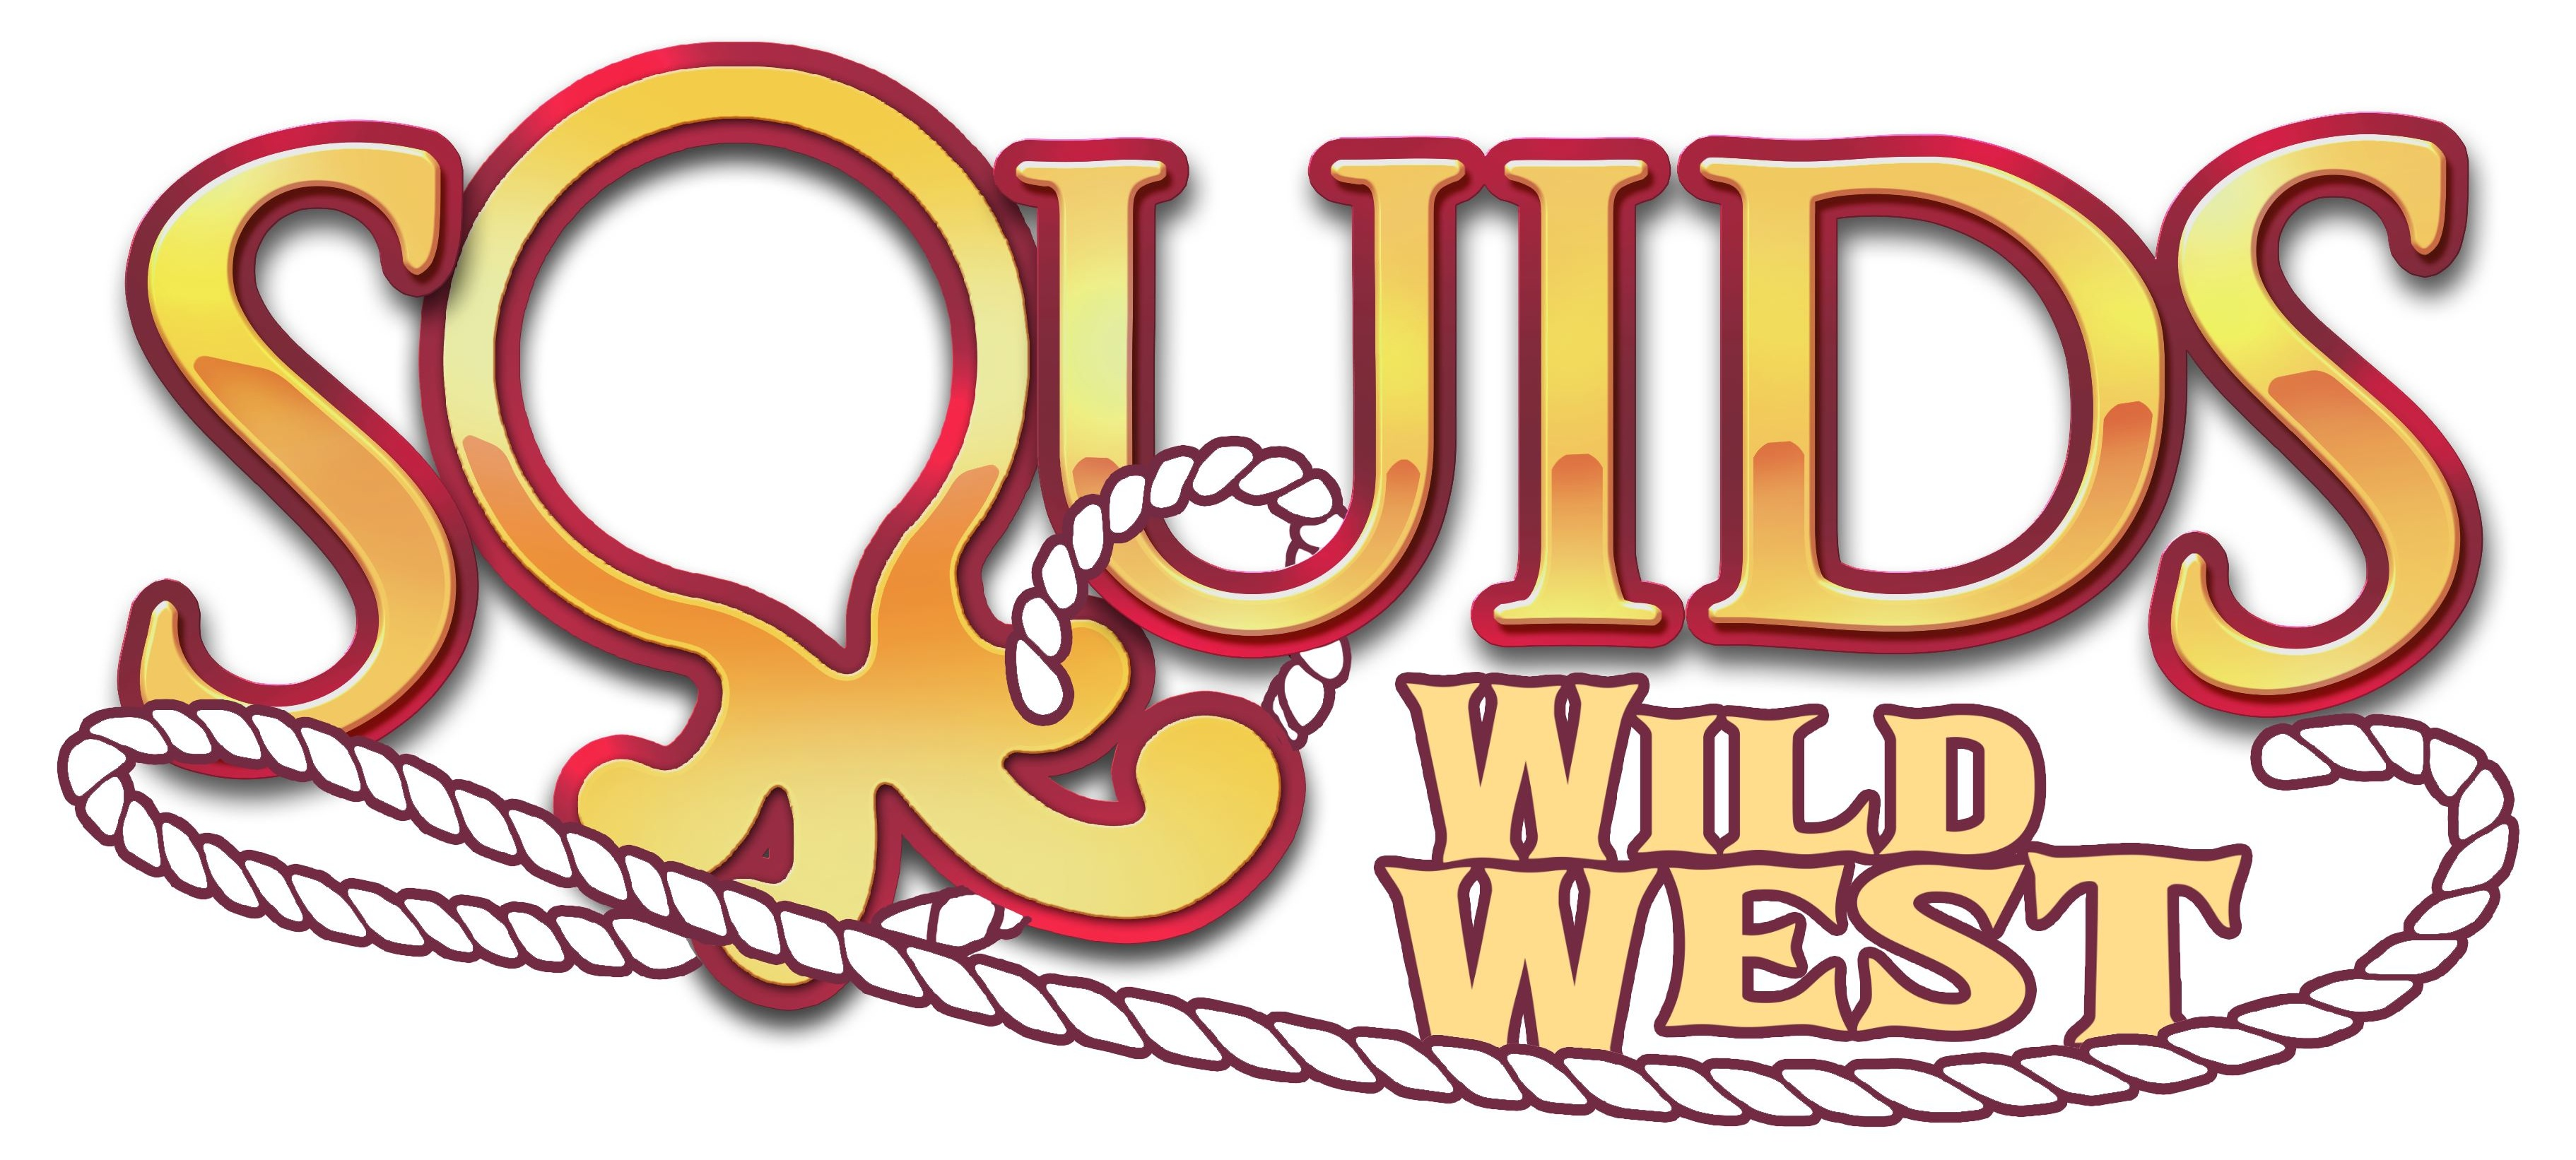 SQUIDS Wild West logo